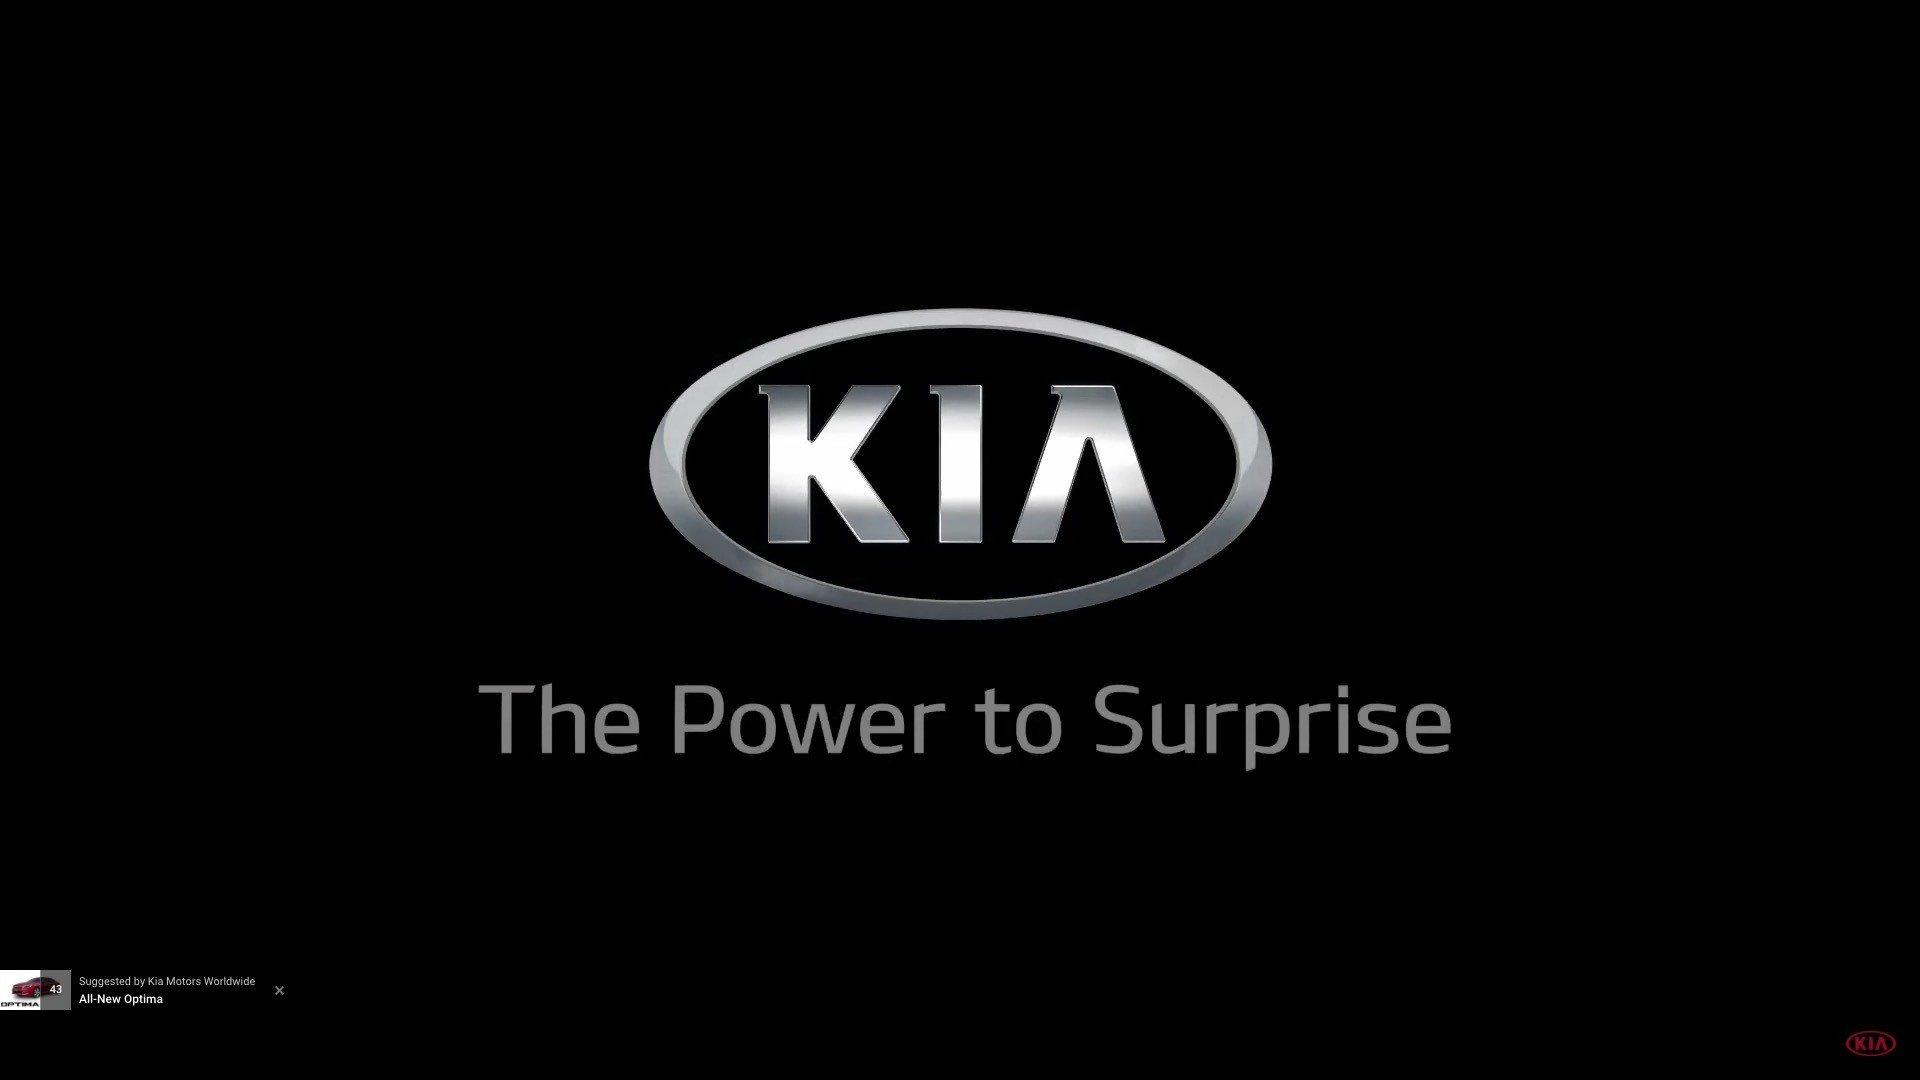 dealership ia com kia in by lujack dealer htm davenport logo new website mazda adchoices